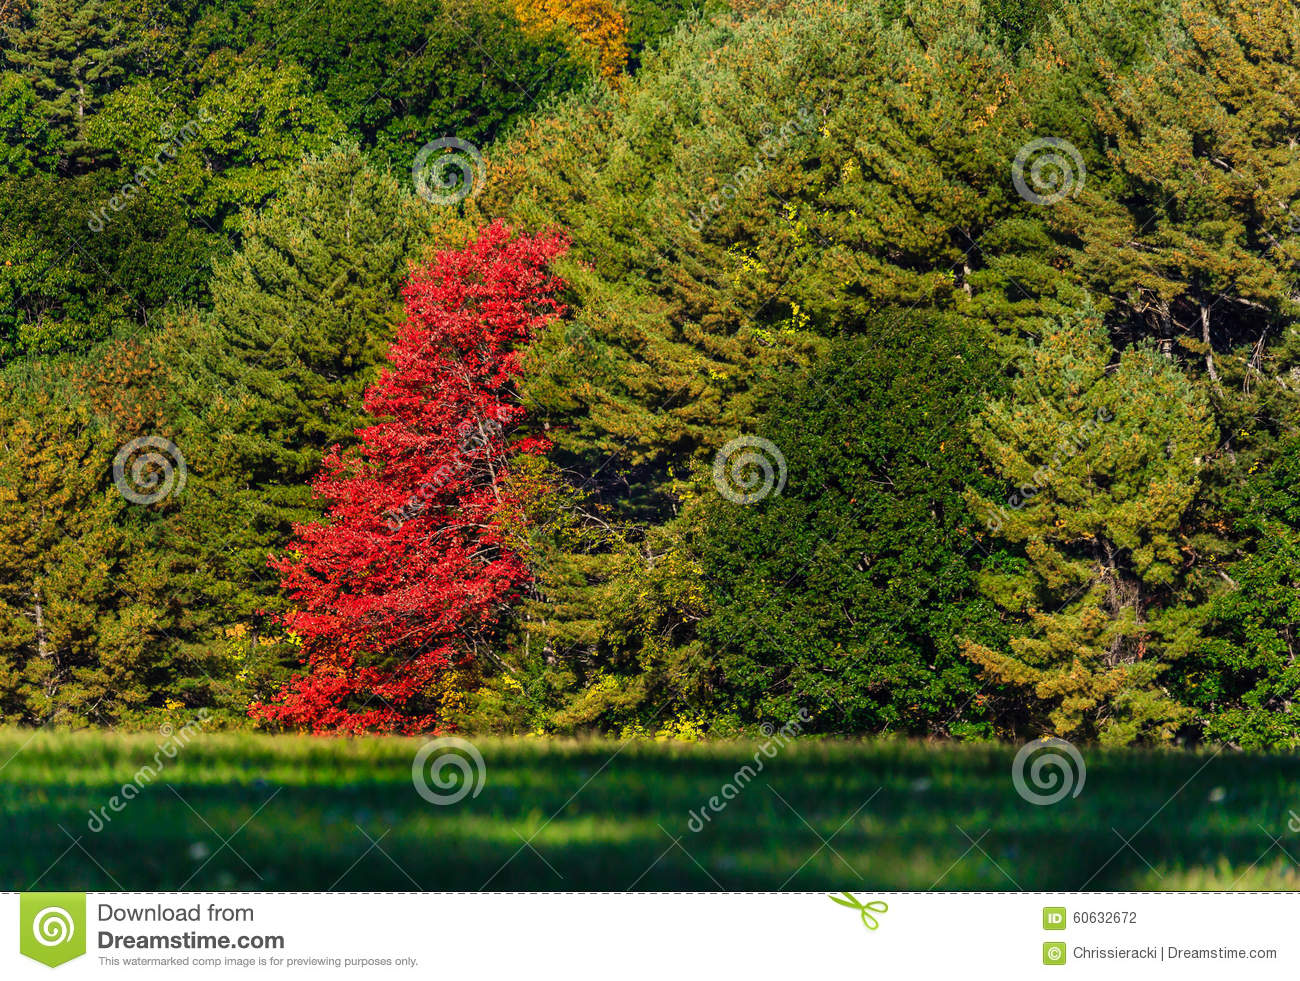 Fall Autumn Red Tree Leaves Stock Photo - Image of lone, pine: 60632672